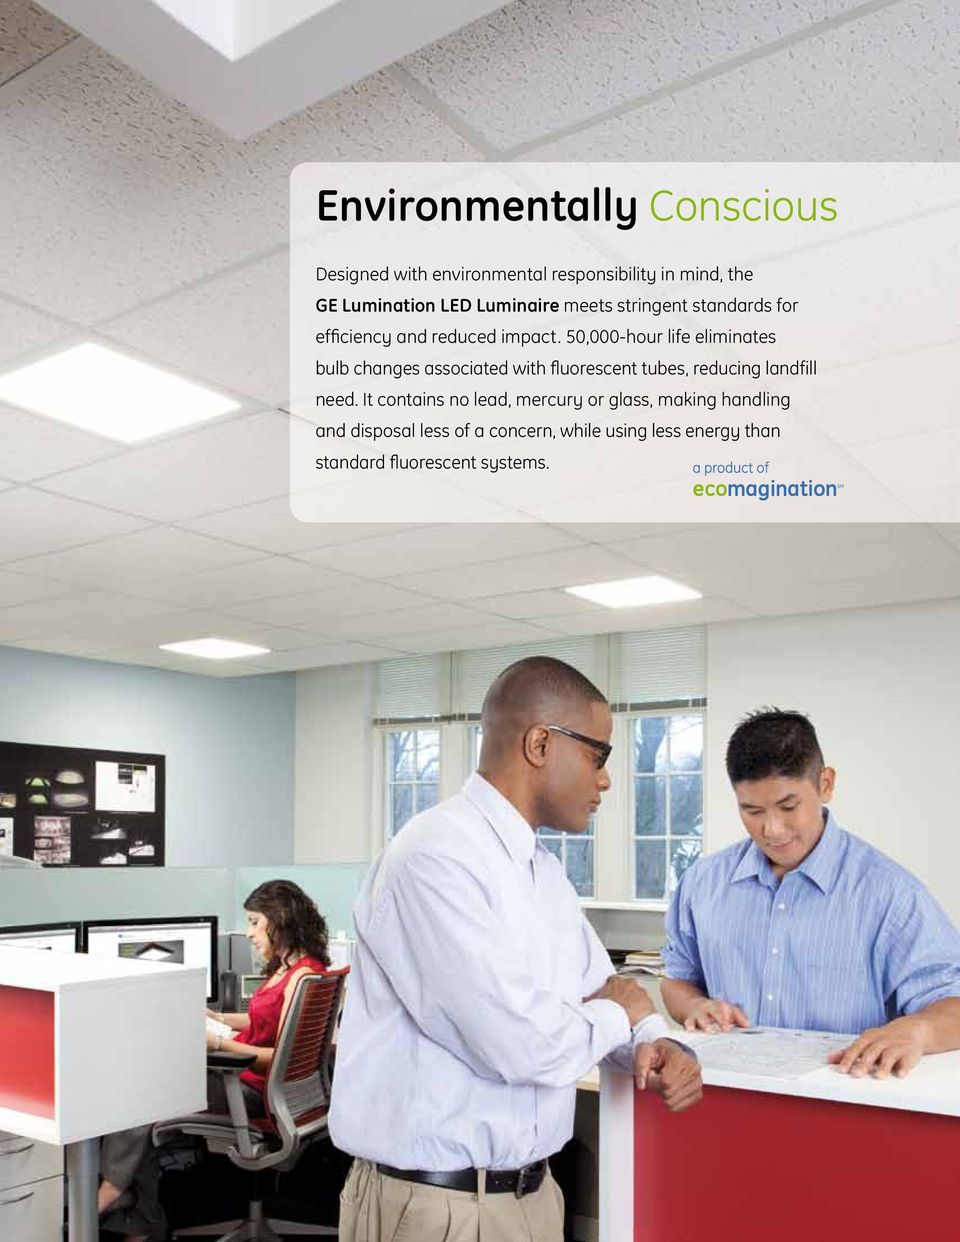 50,000-hour life eliminates bulb changes associated with fluorescent tubes, reducing landfill need.